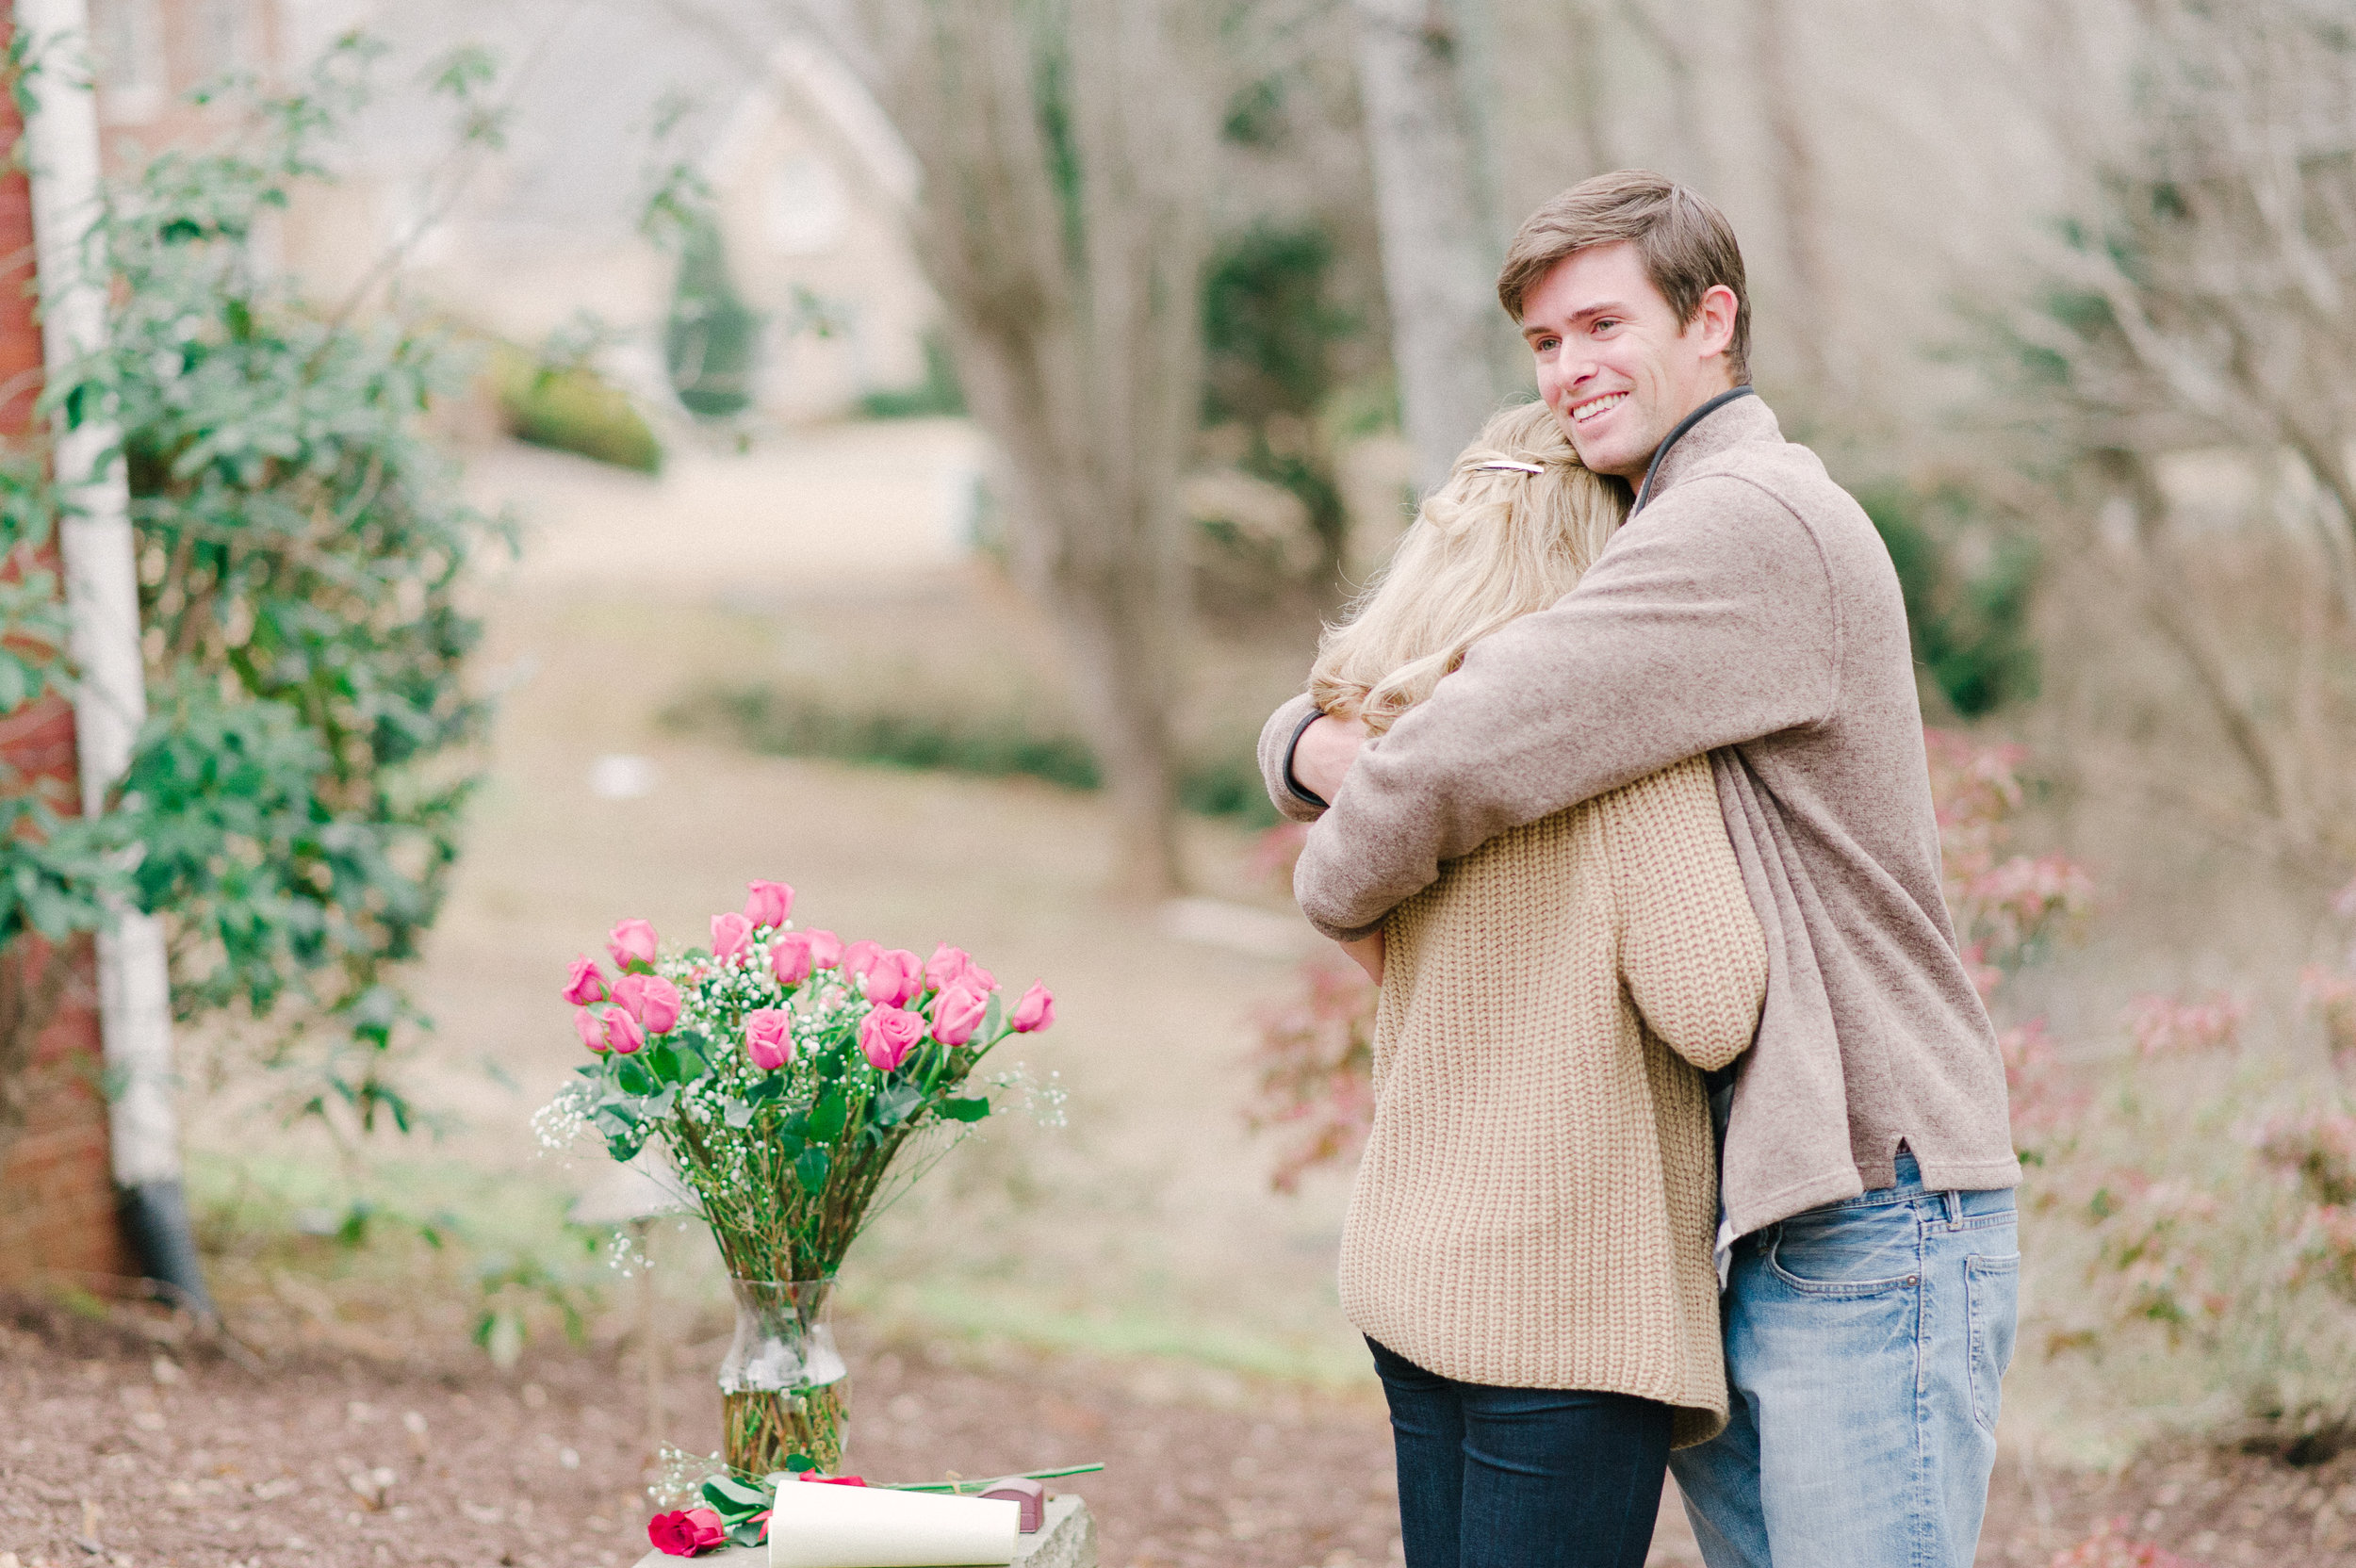 Hannah-forsberg-engagement-proposal-photographer-atlanta-16.jpg